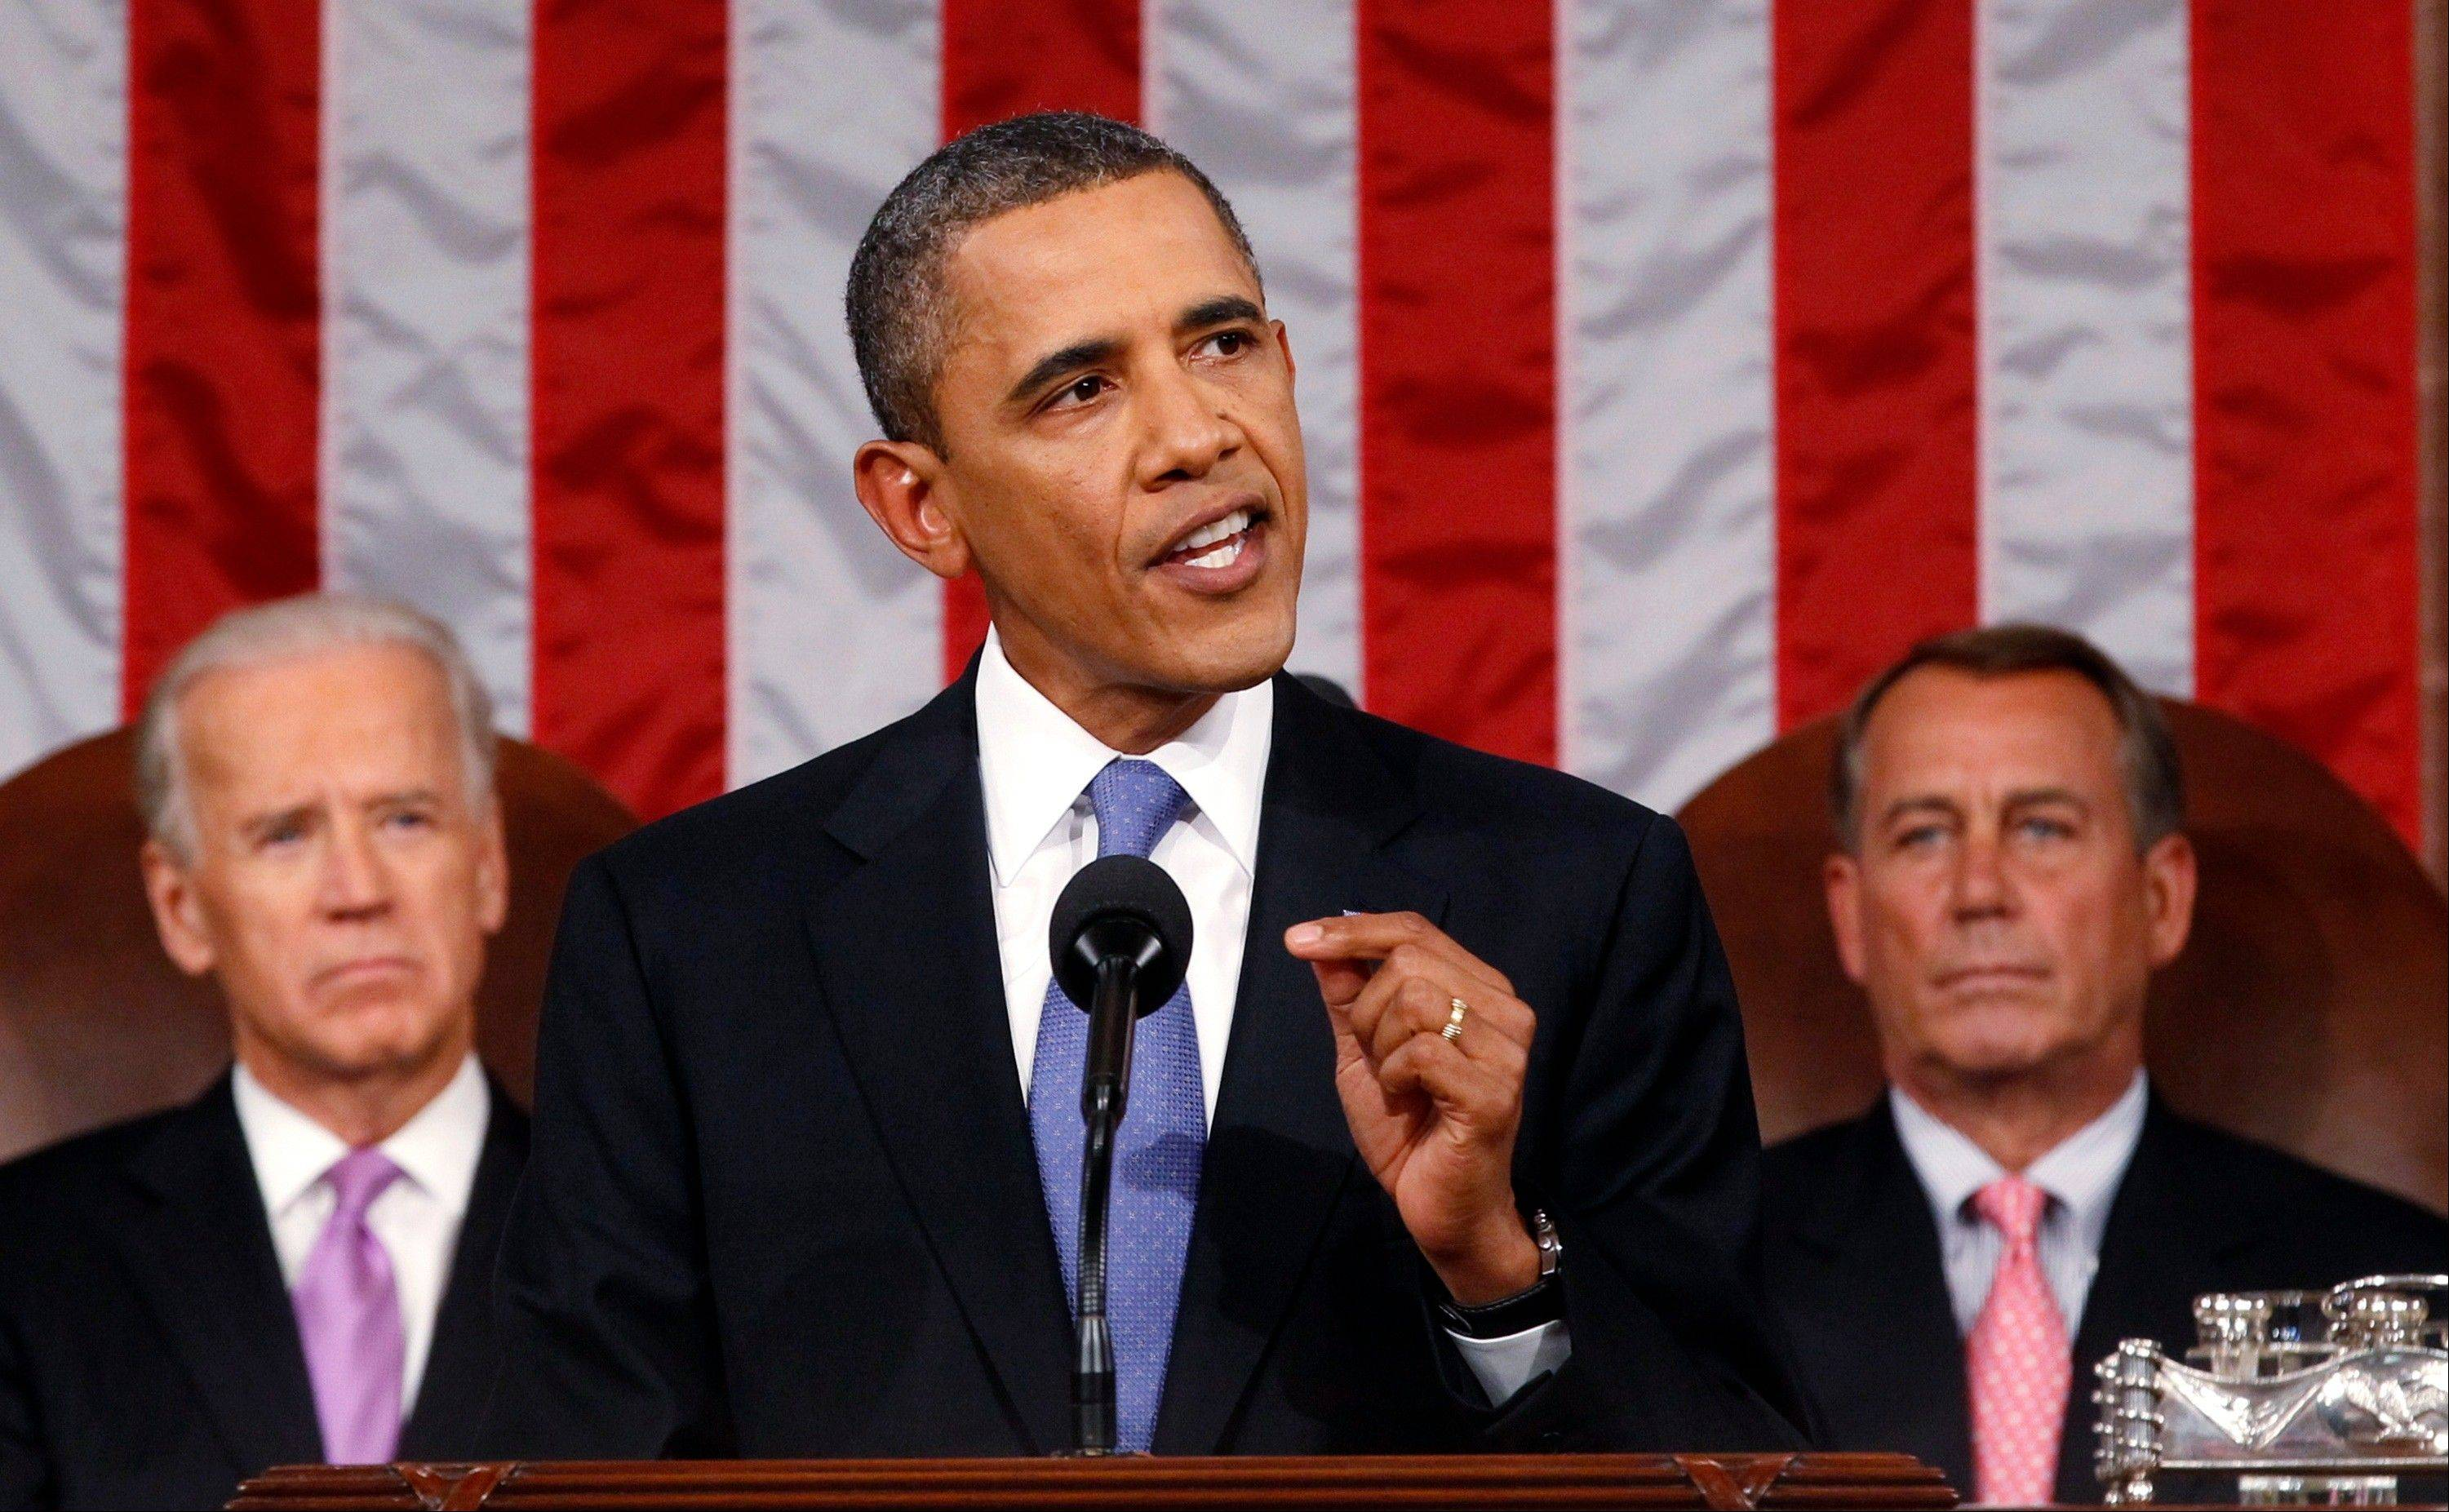 President Barack Obama did not spell out exactly how he would pay for the measures contained in his nearly $450 billion American Jobs Act but said he would send his proposed specifics in a week to the new congressional supercommittee charged with finding budget savings